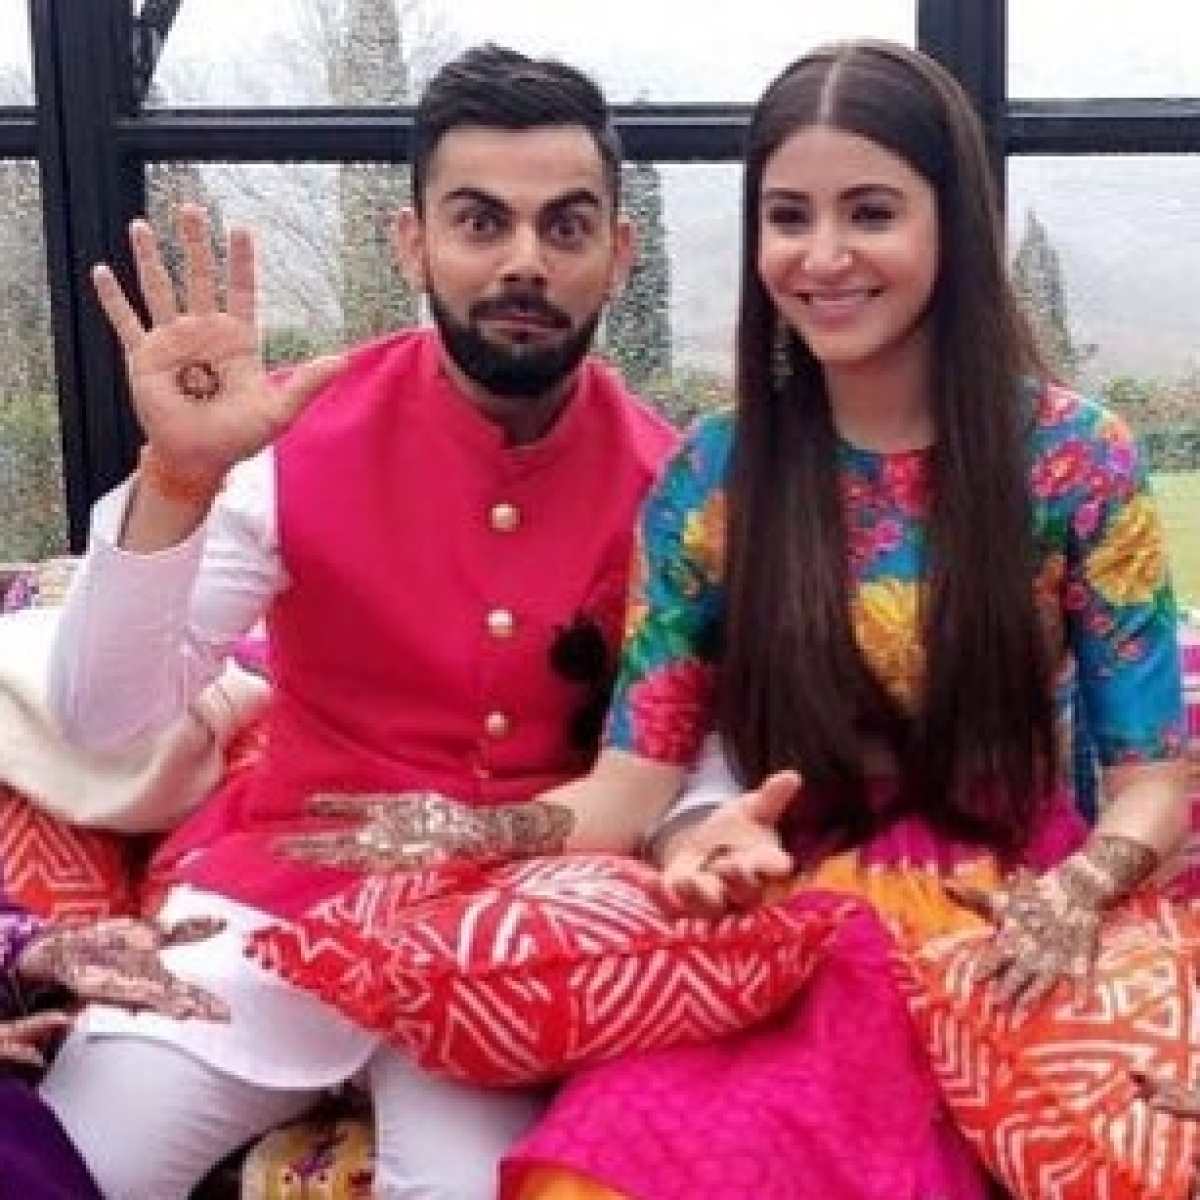 Anushka Sharma's sister-in-law Bhawna Kohli issues clarification after comment on baby Vamika's looks